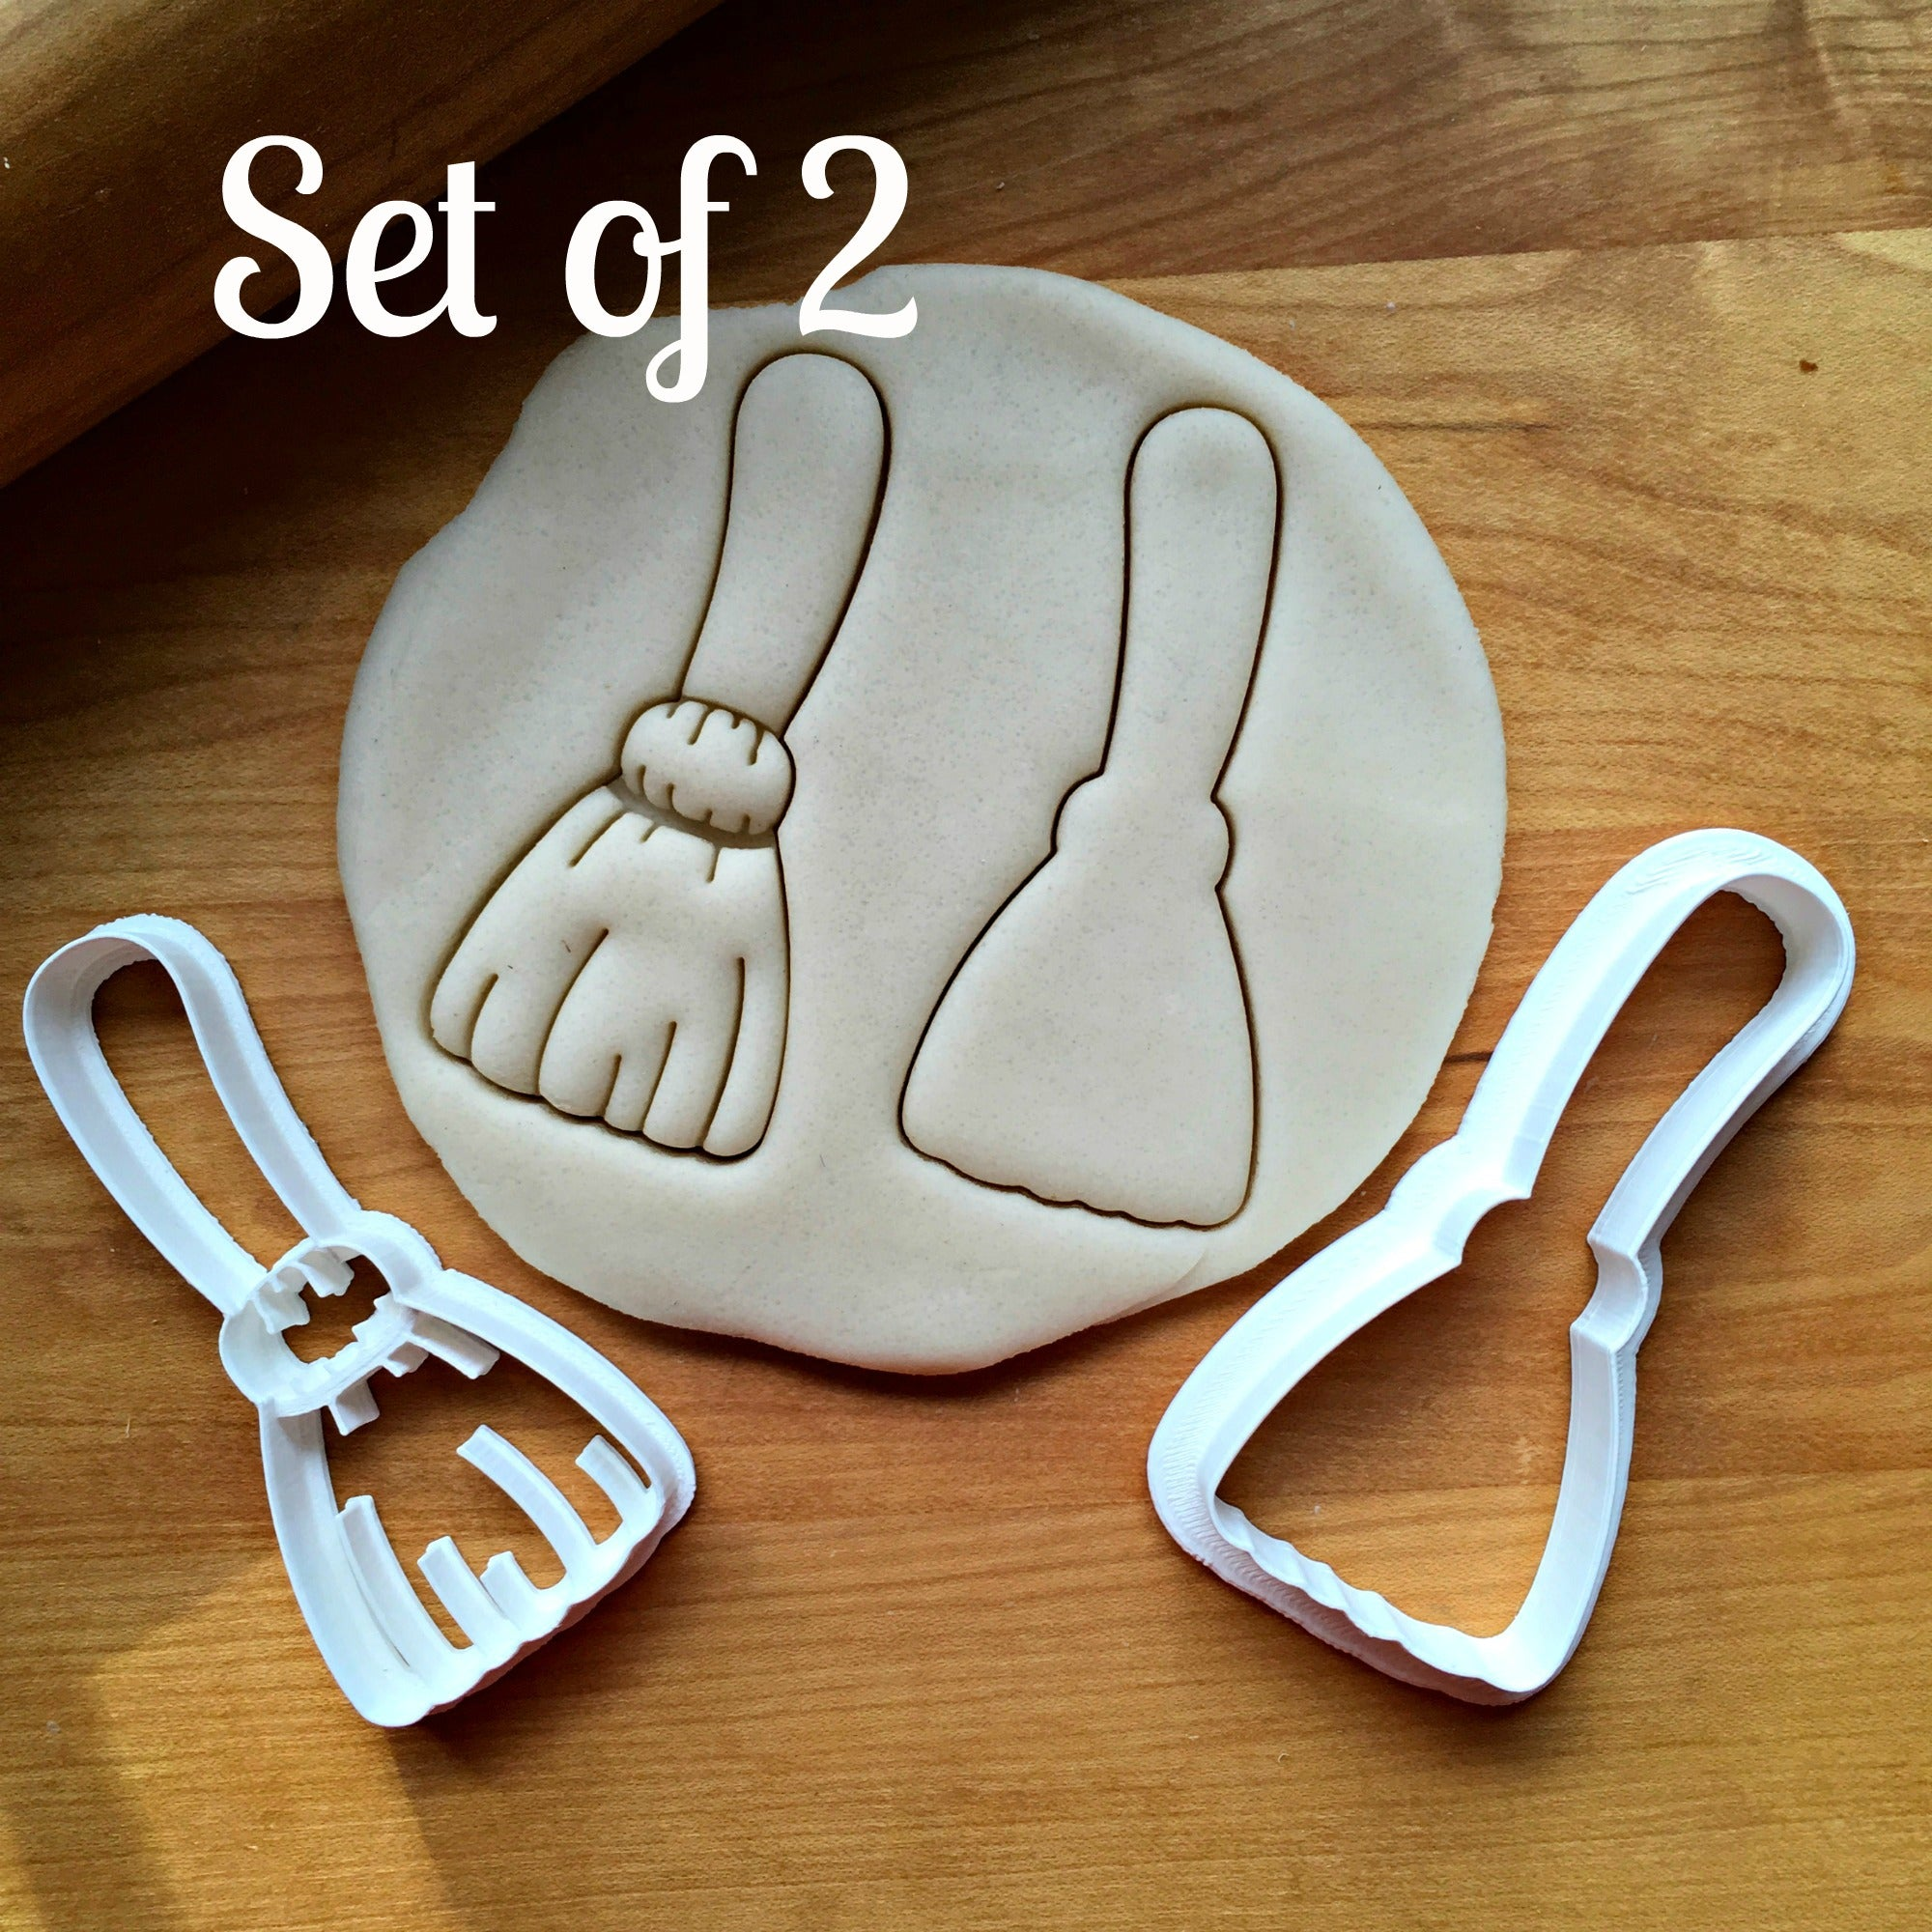 Set of 2 Broom Cookie Cutters/Dishwasher Safe